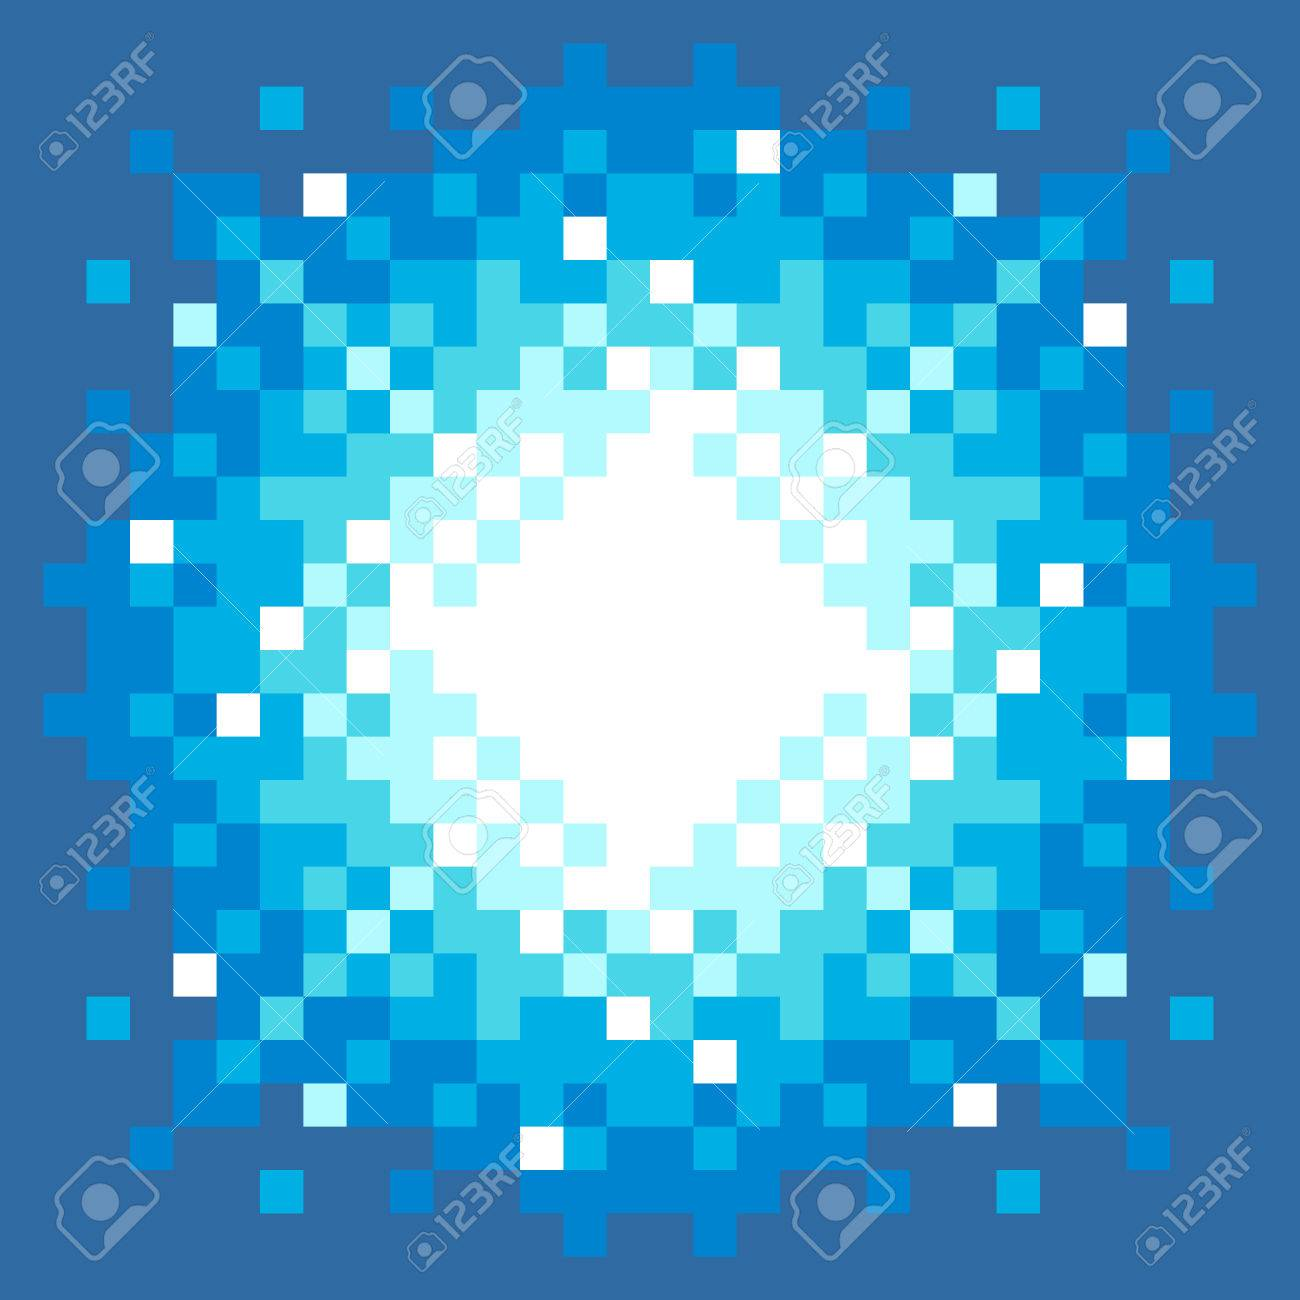 8-Bit Pixel-art Explosion on a Blue Background Stock Vector - 23659999